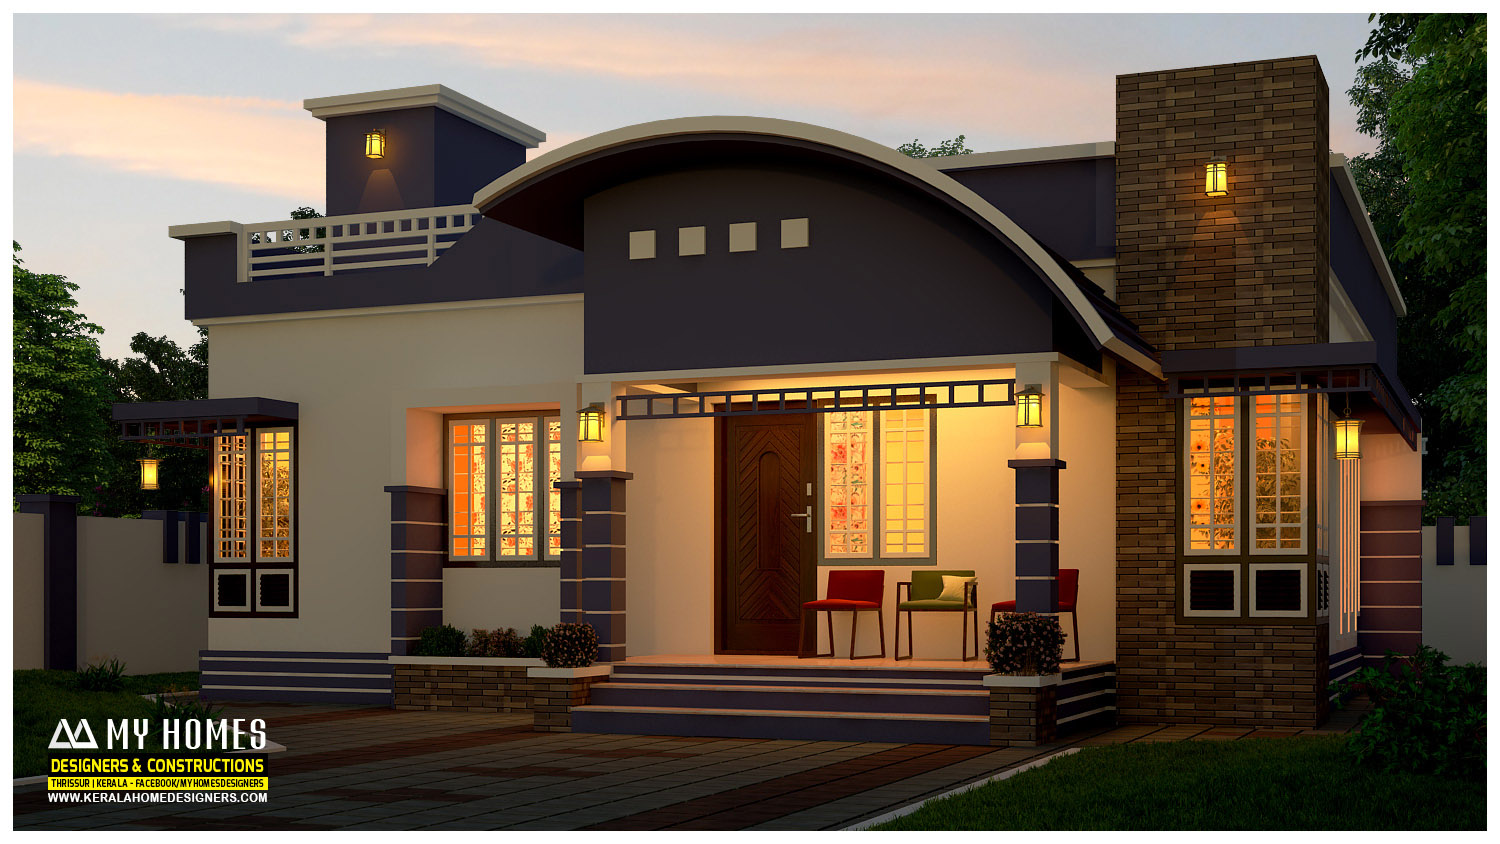 Low budget kerala home designers constructions company for House designs kerala style low cost